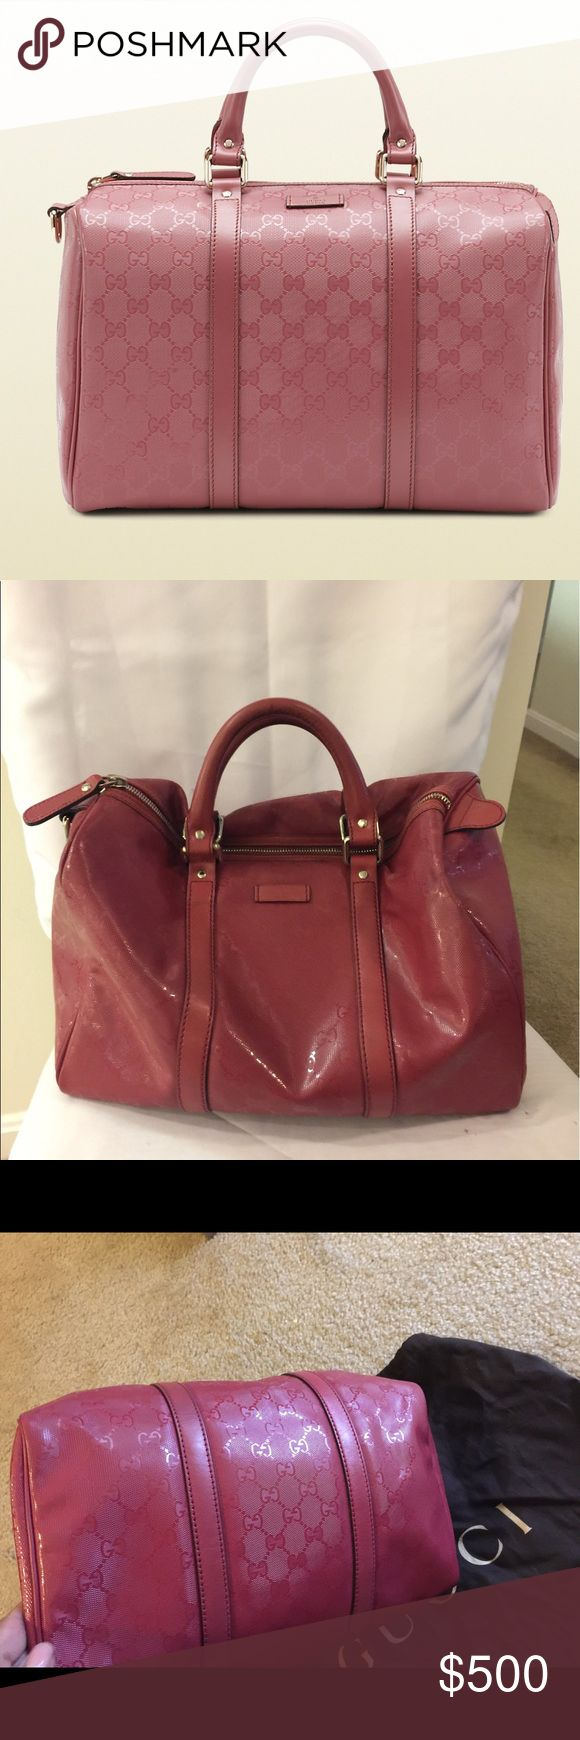 """Authentic Gucci Boston Monogram in """"Dark Rose"""" Good pre-owned condition. Authentic & I encourage you to have it verified through the Posh Concierge😀. Minor marks on the inside (see pics). see pic of bag code. Bag is a dark Rose vinyl material. Silver hardware Gucci monogram GG in rose. Top Handle. Gucci Dust bag included. Sand colored fabric interior. Inside zipper pocket.  ✅L13inch H10inch D7inches Drop 5 inches. NO TRADES. 😘 very unique bag! FINAL PRICE ❤️Also selling a gold one check…"""